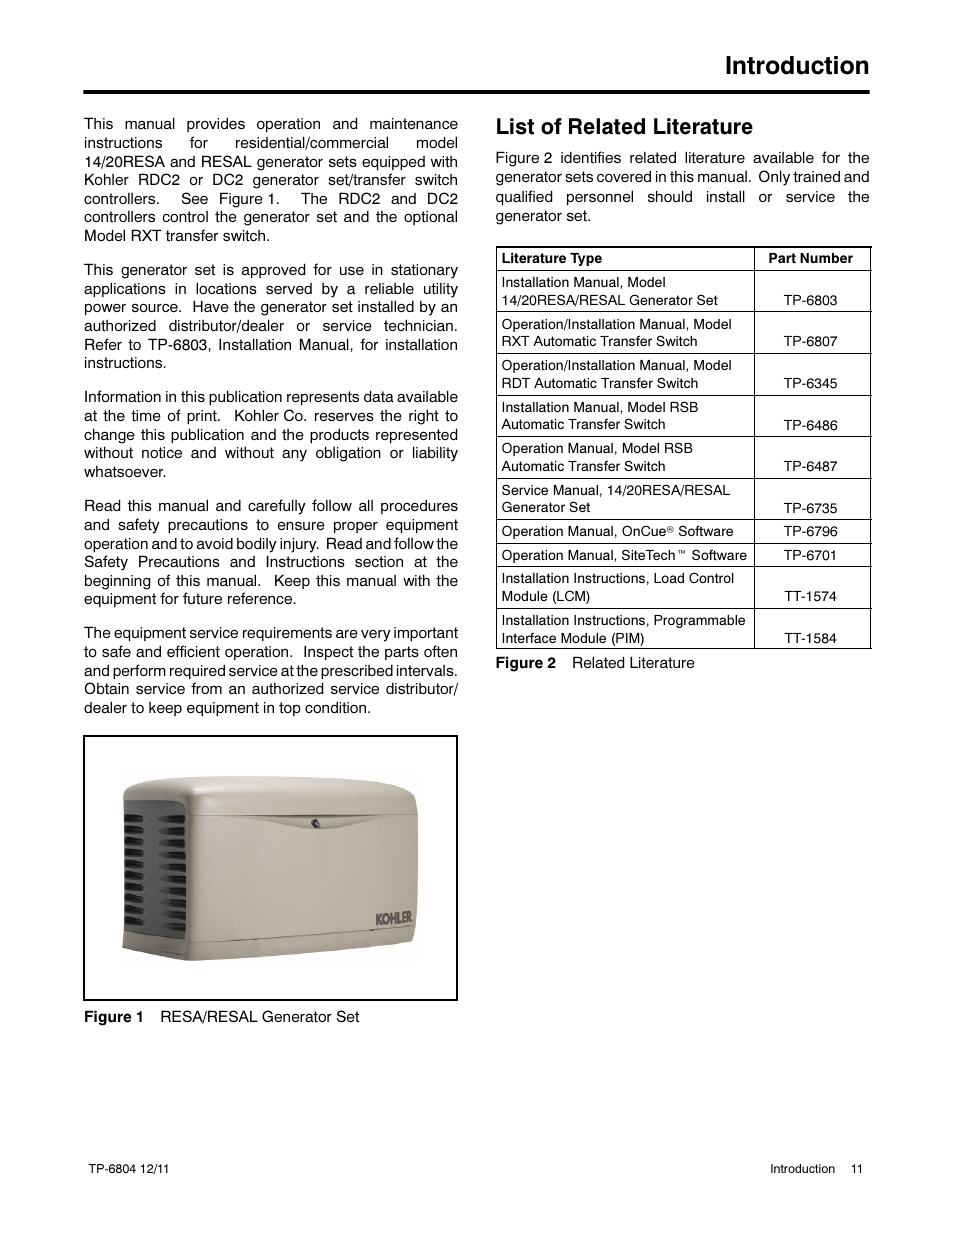 Introduction, List of related literature | Kohler Power Systems 14/20RESA  User Manual | Page 11 / 72